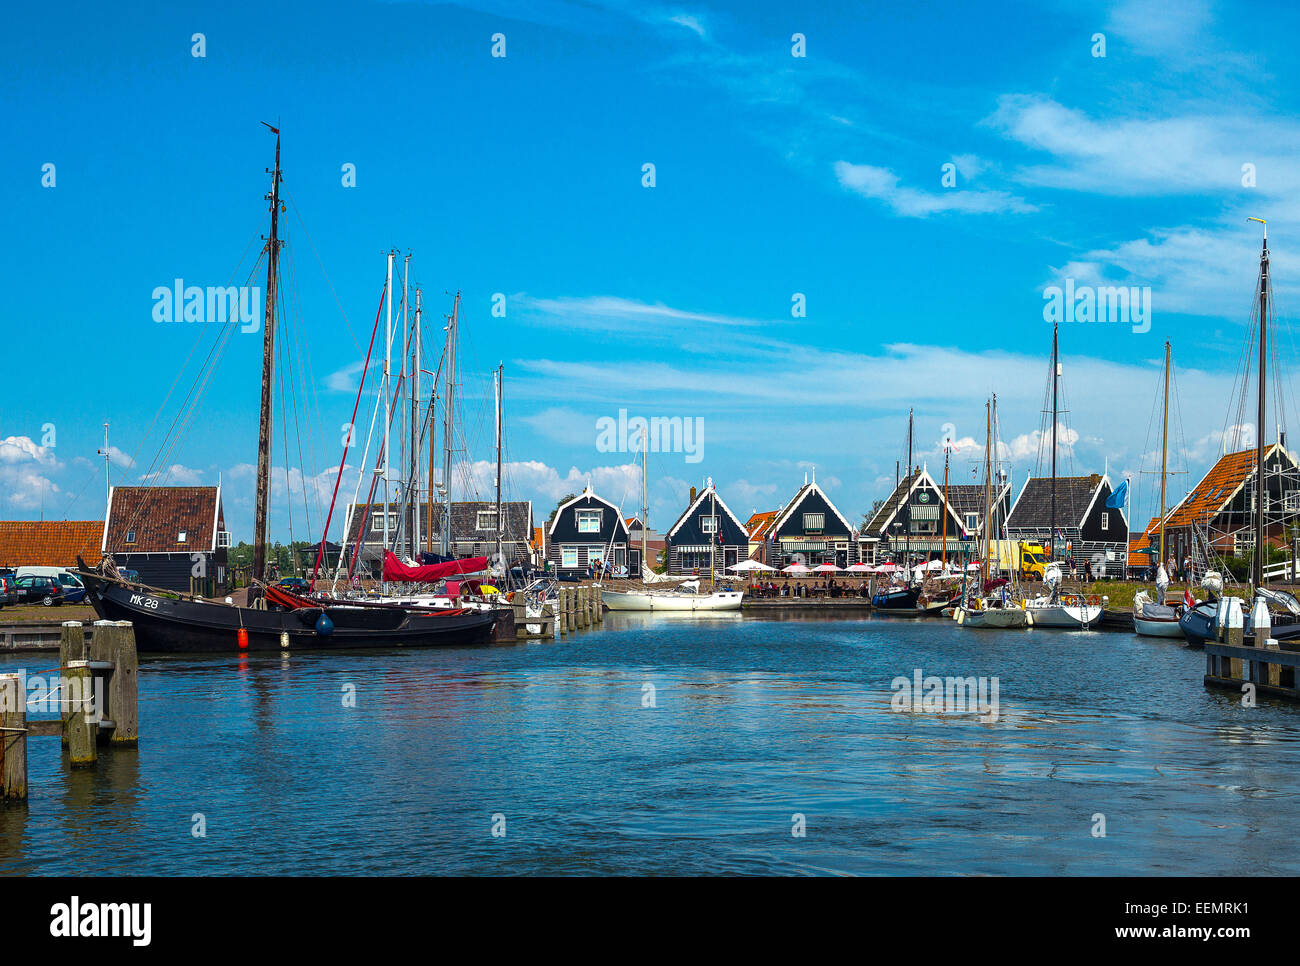 Amsterdam, Waterland district, Marken, boats in the little harbour of the village Stock Photo